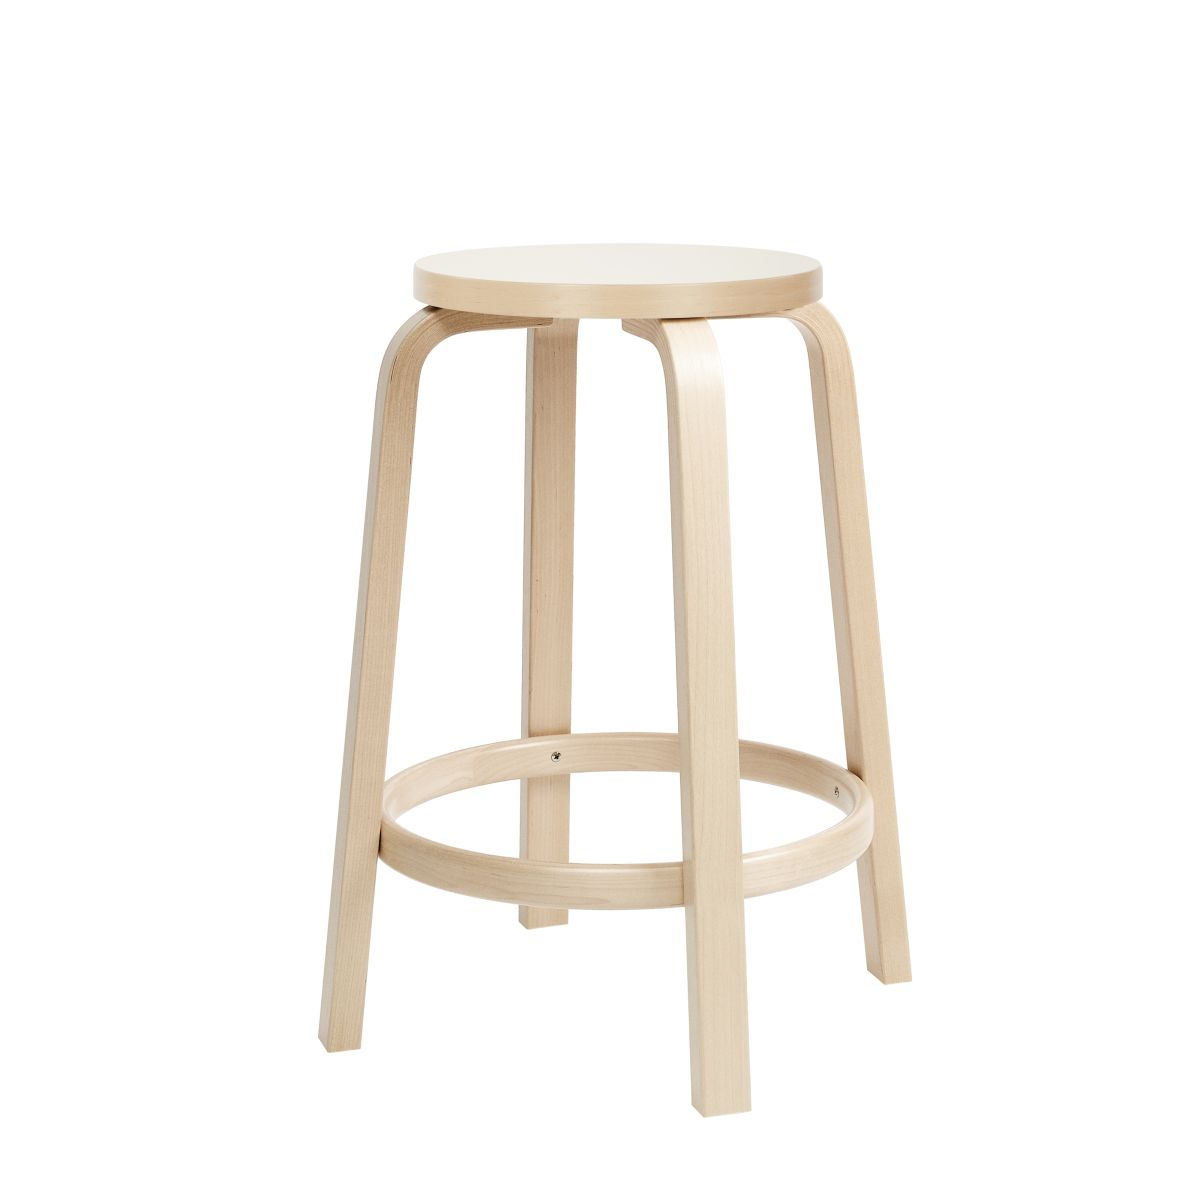 Bar-Stool-64-65Cm-Legs-Birch_Top-White-Hpl_Srgb-2430521